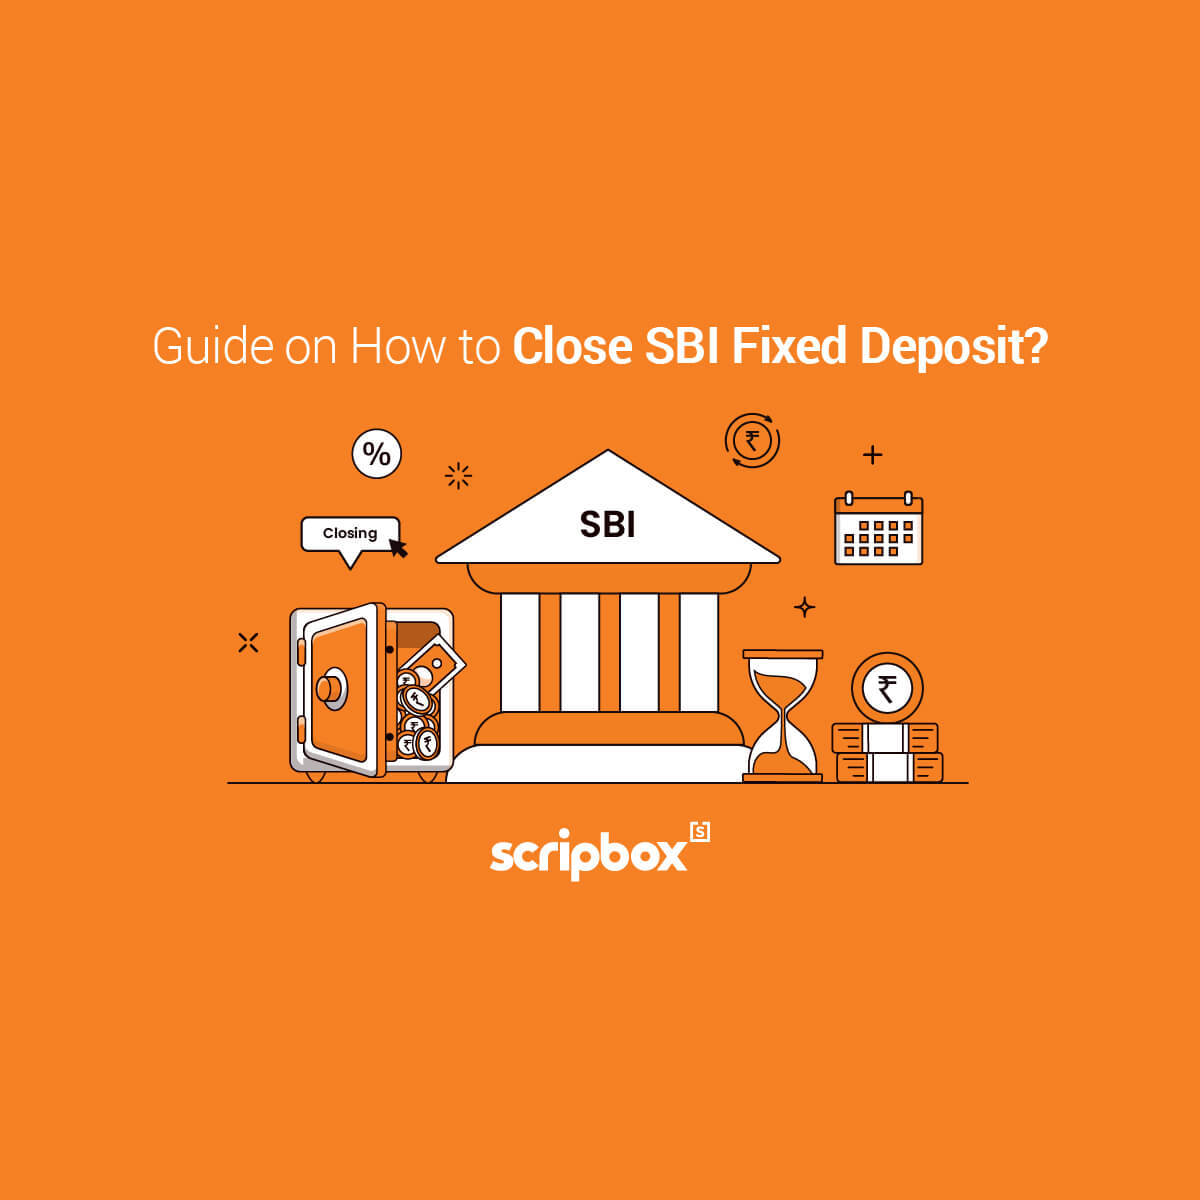 how to close sbi fixed deposit